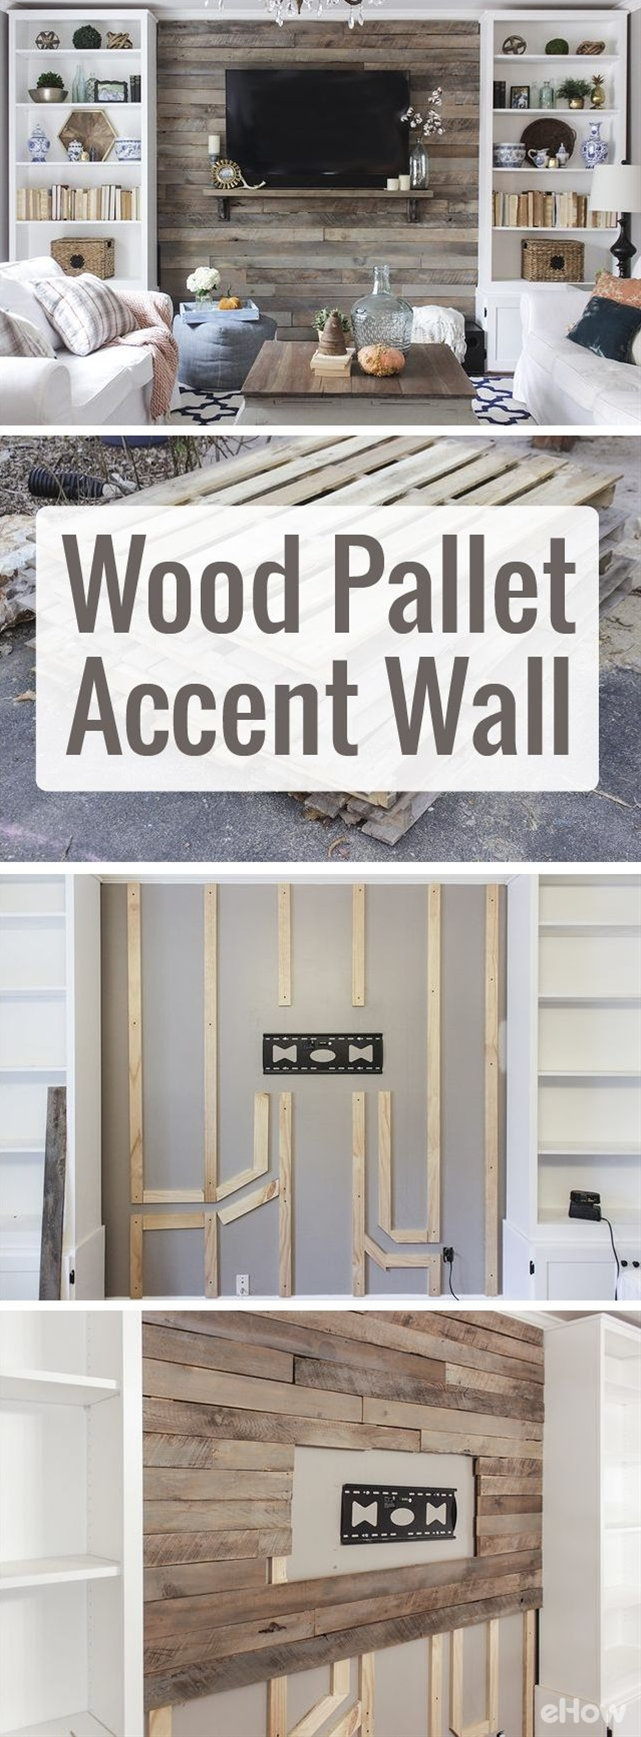 Using pallets makes this home makeover so inexpensive and easy to DIY!\n\n